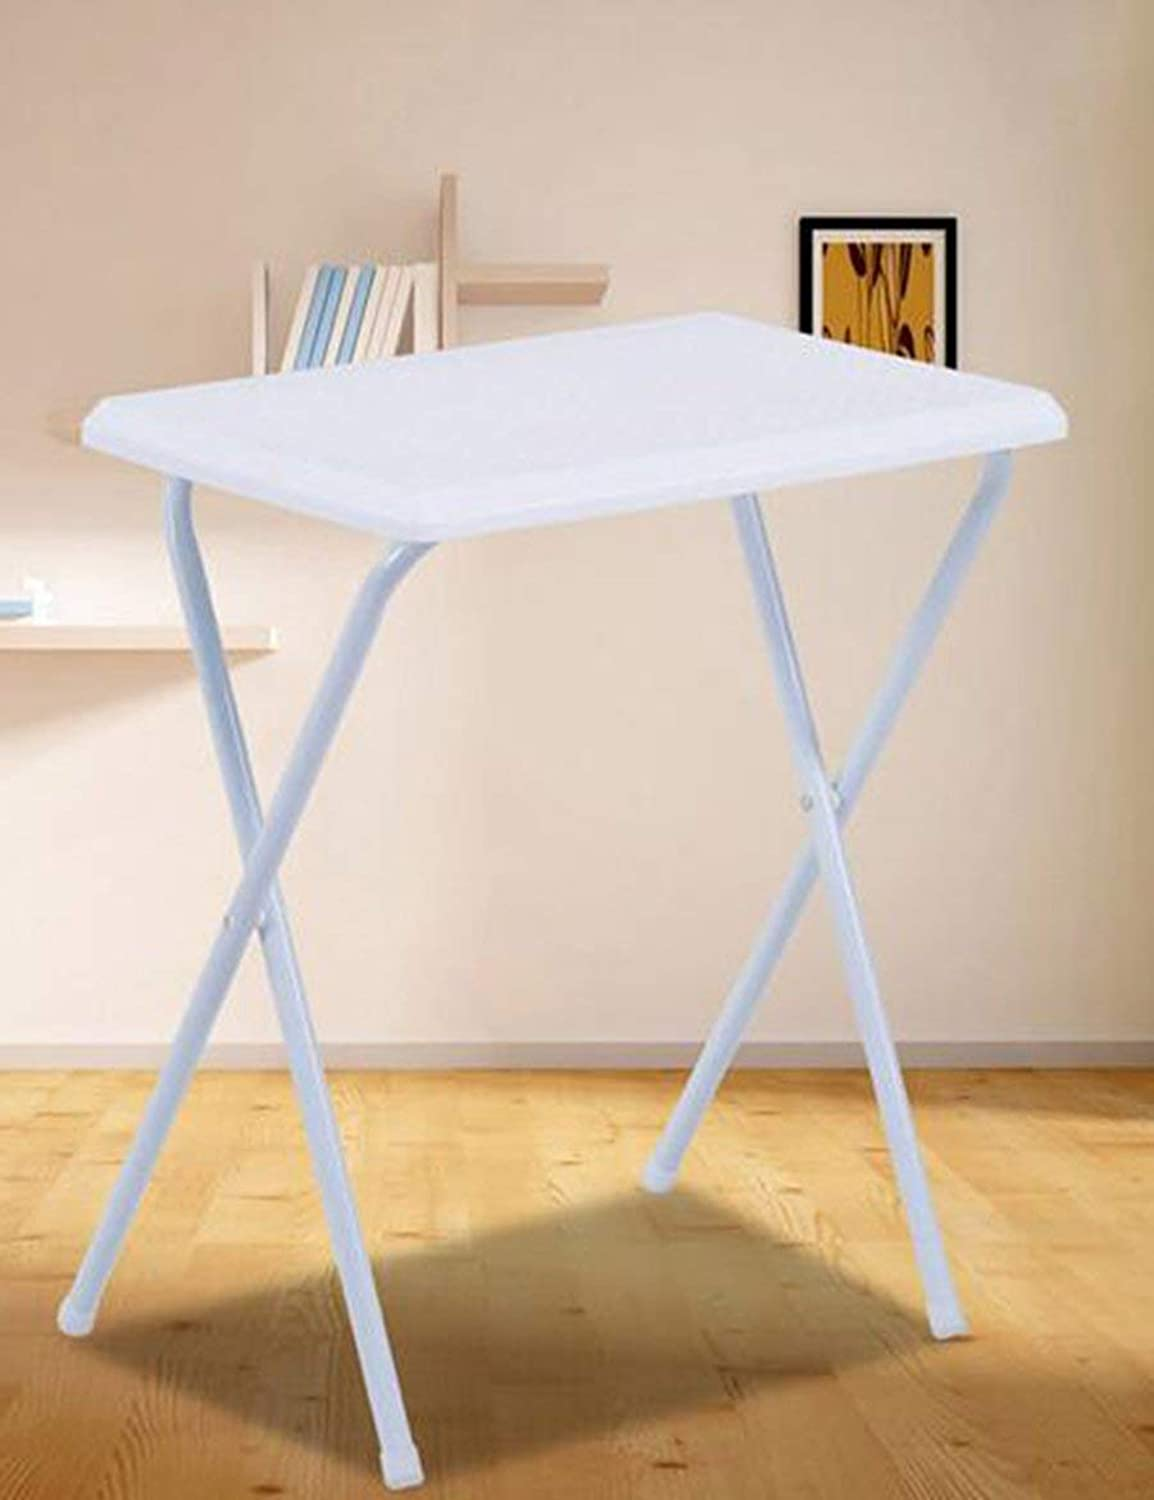 DEED Table- Plastic Light Fold Table Portable Stall Tables Writing Desk Simple Computer Desk Learning Mobile Desk Save Space Dormitory Student Easy Lazy Bed Simple Home